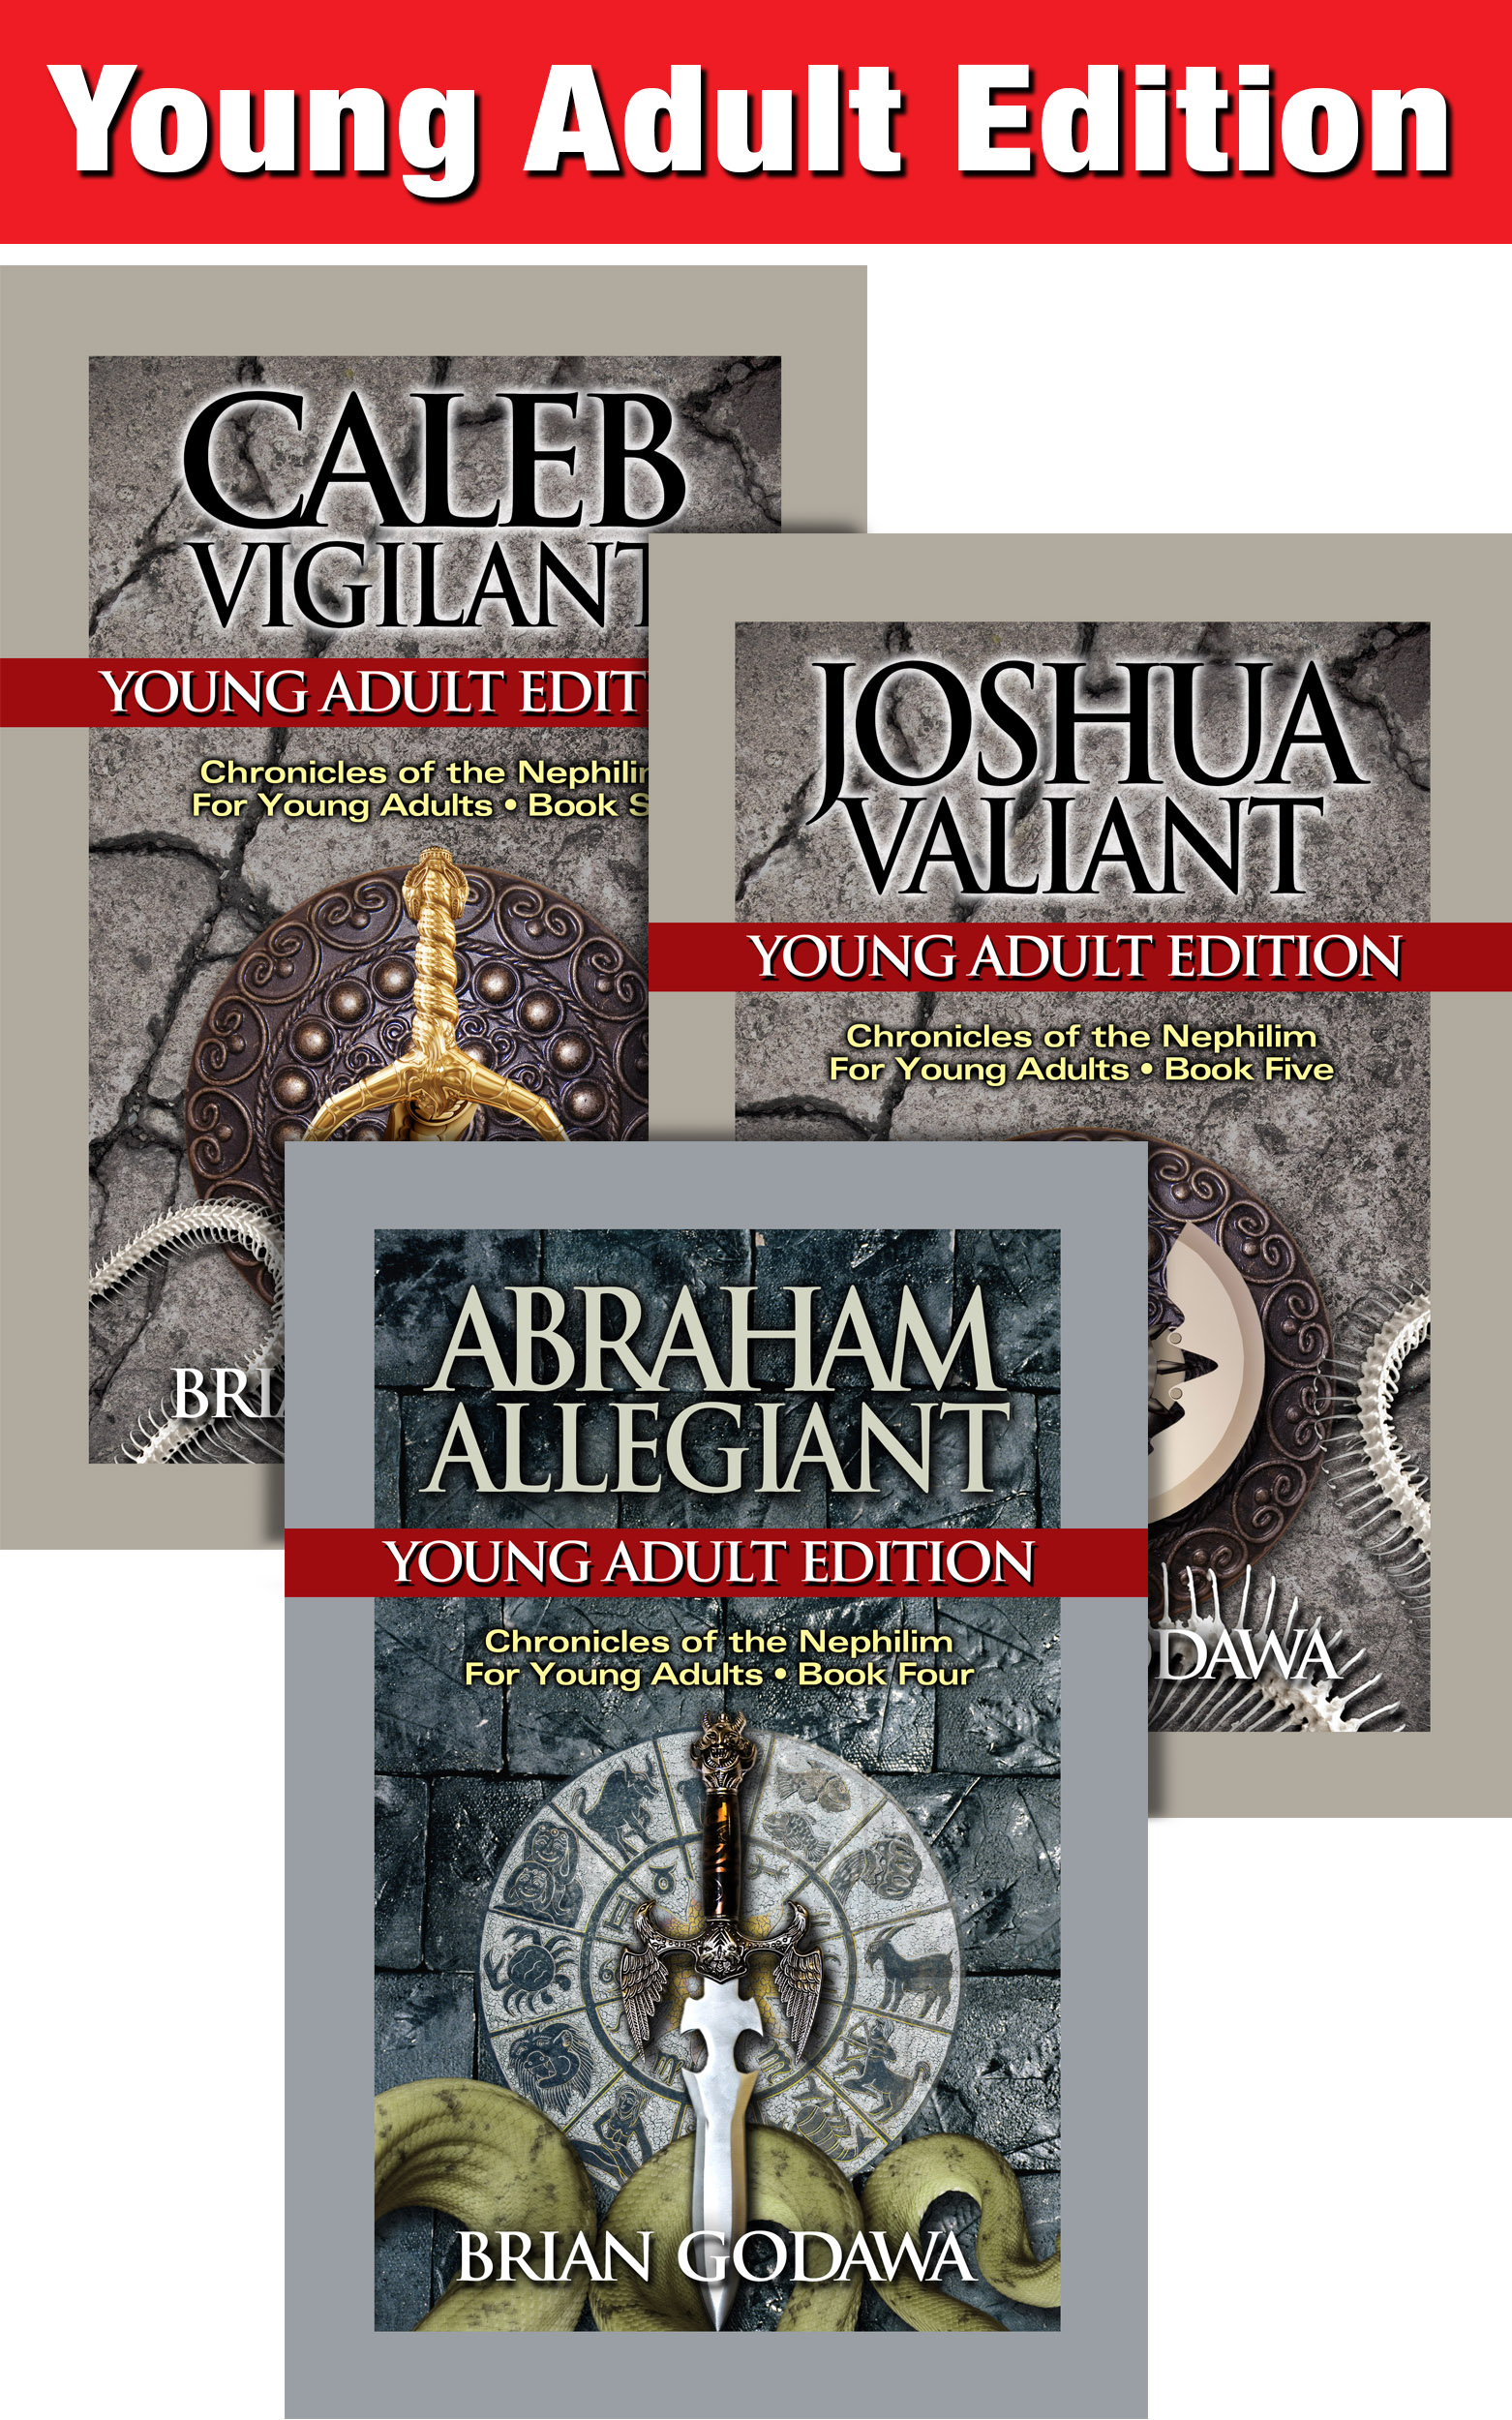 Abraham Allegiant: Young Adult Edition (Chronicles of the Nephilim for Young Adults Book 4)